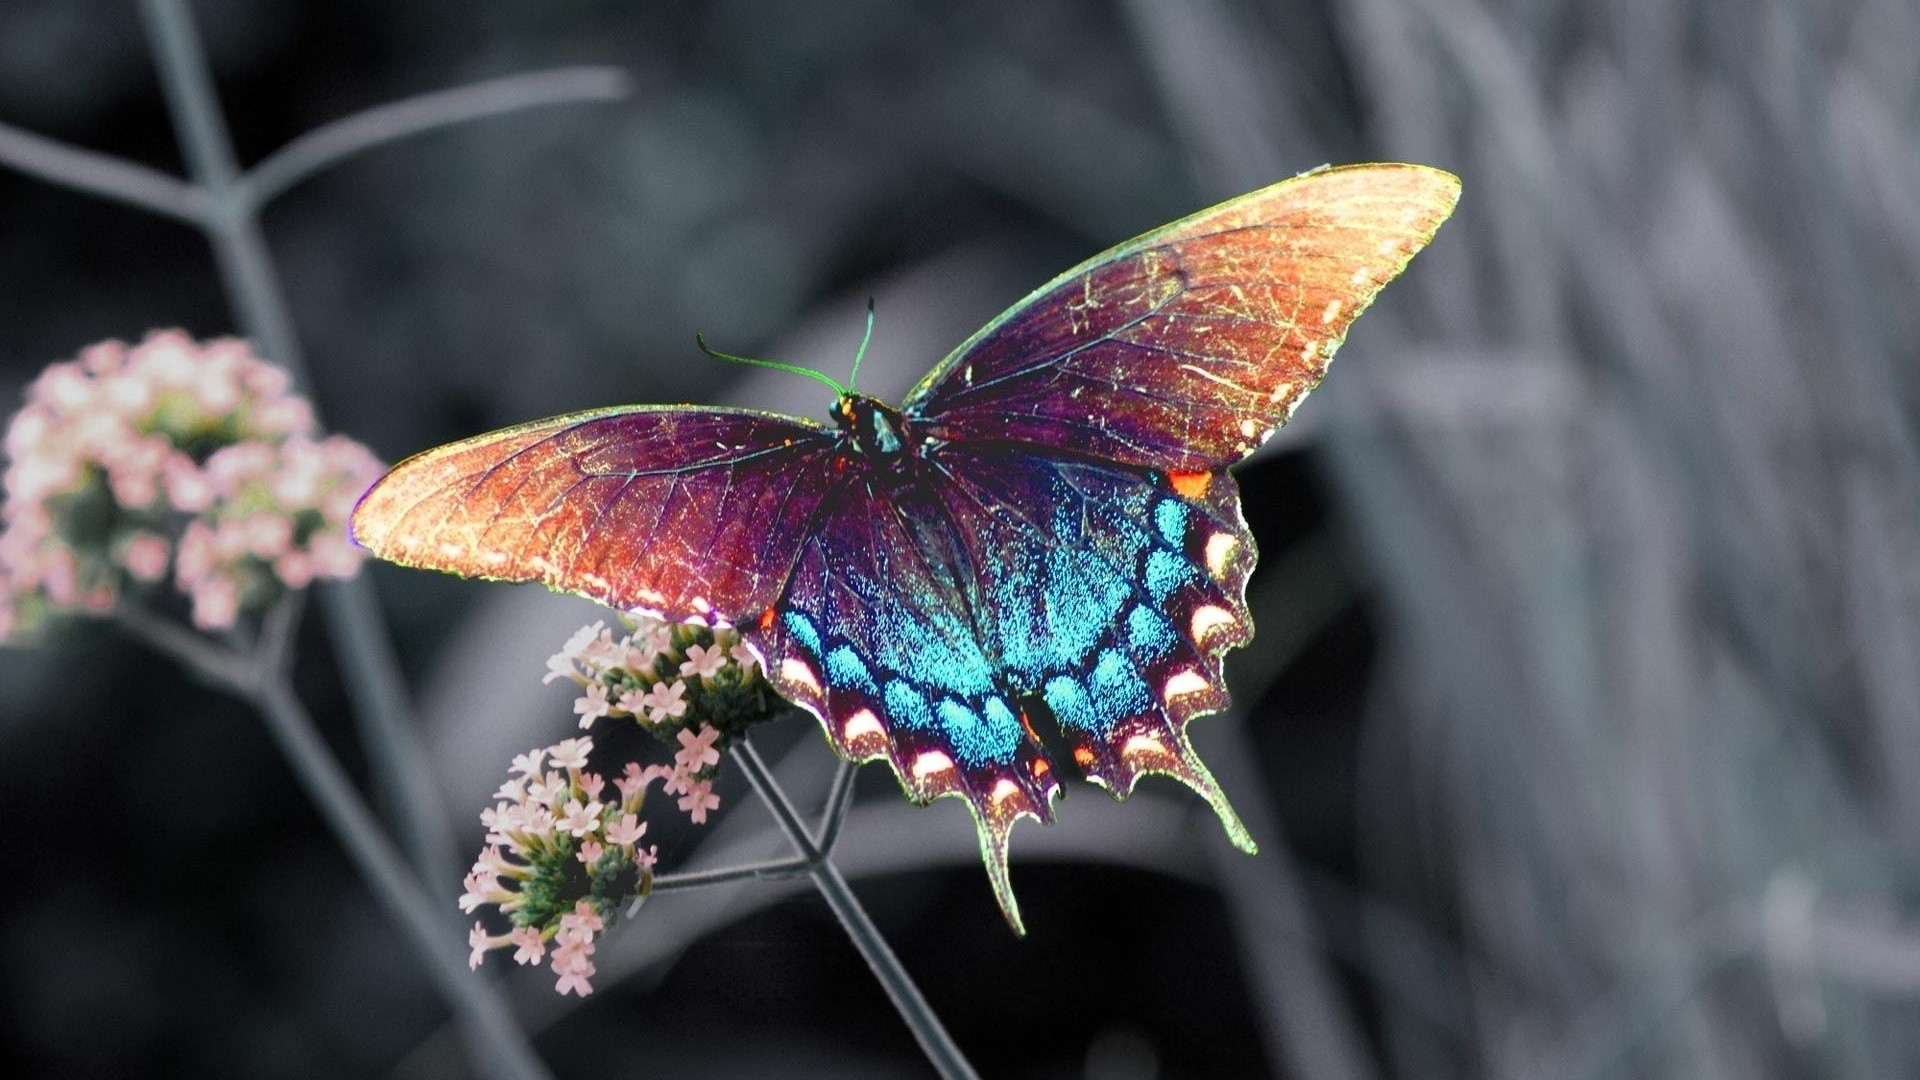 Butterfly - photo#38